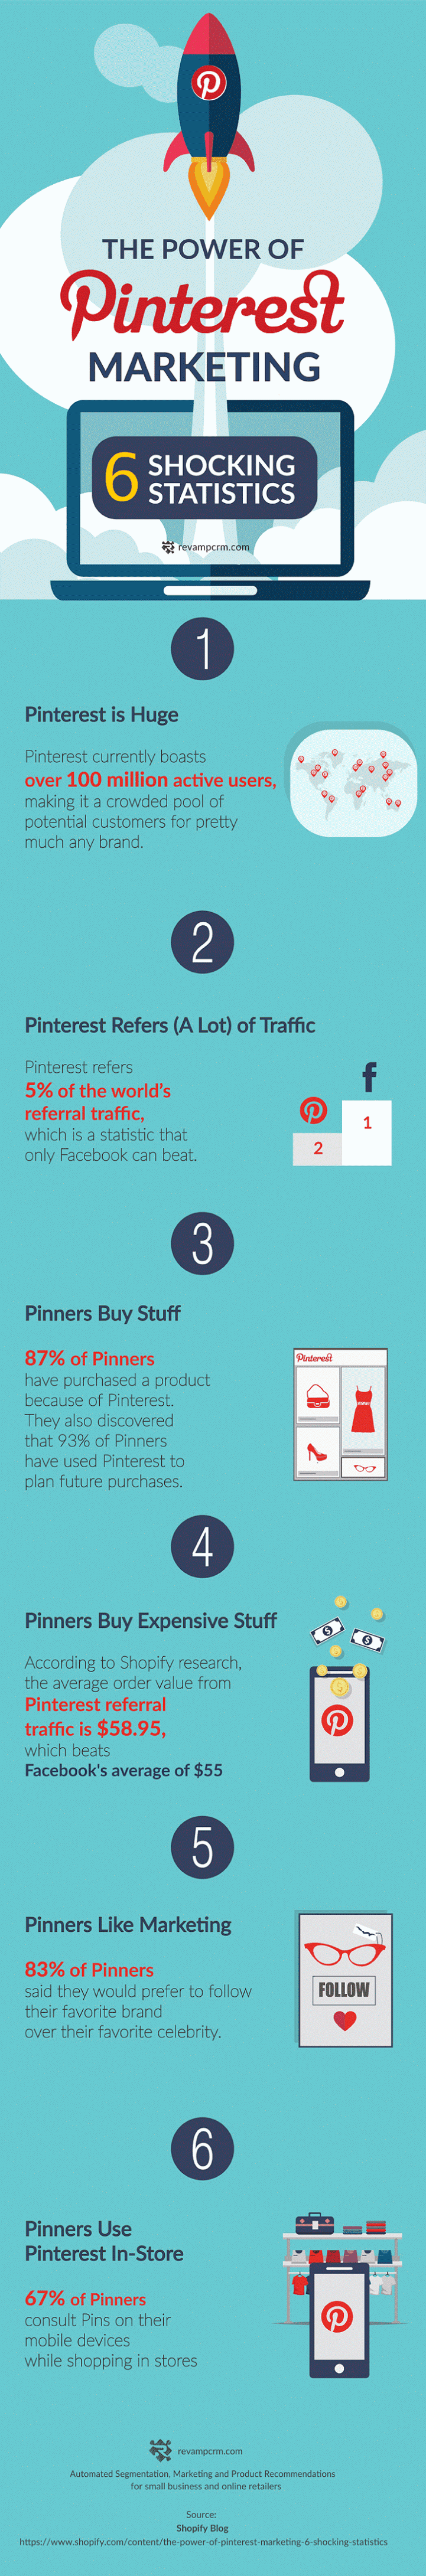 6 Shocking Statistics about Pinterest That You Probably Didn't Know - infographic